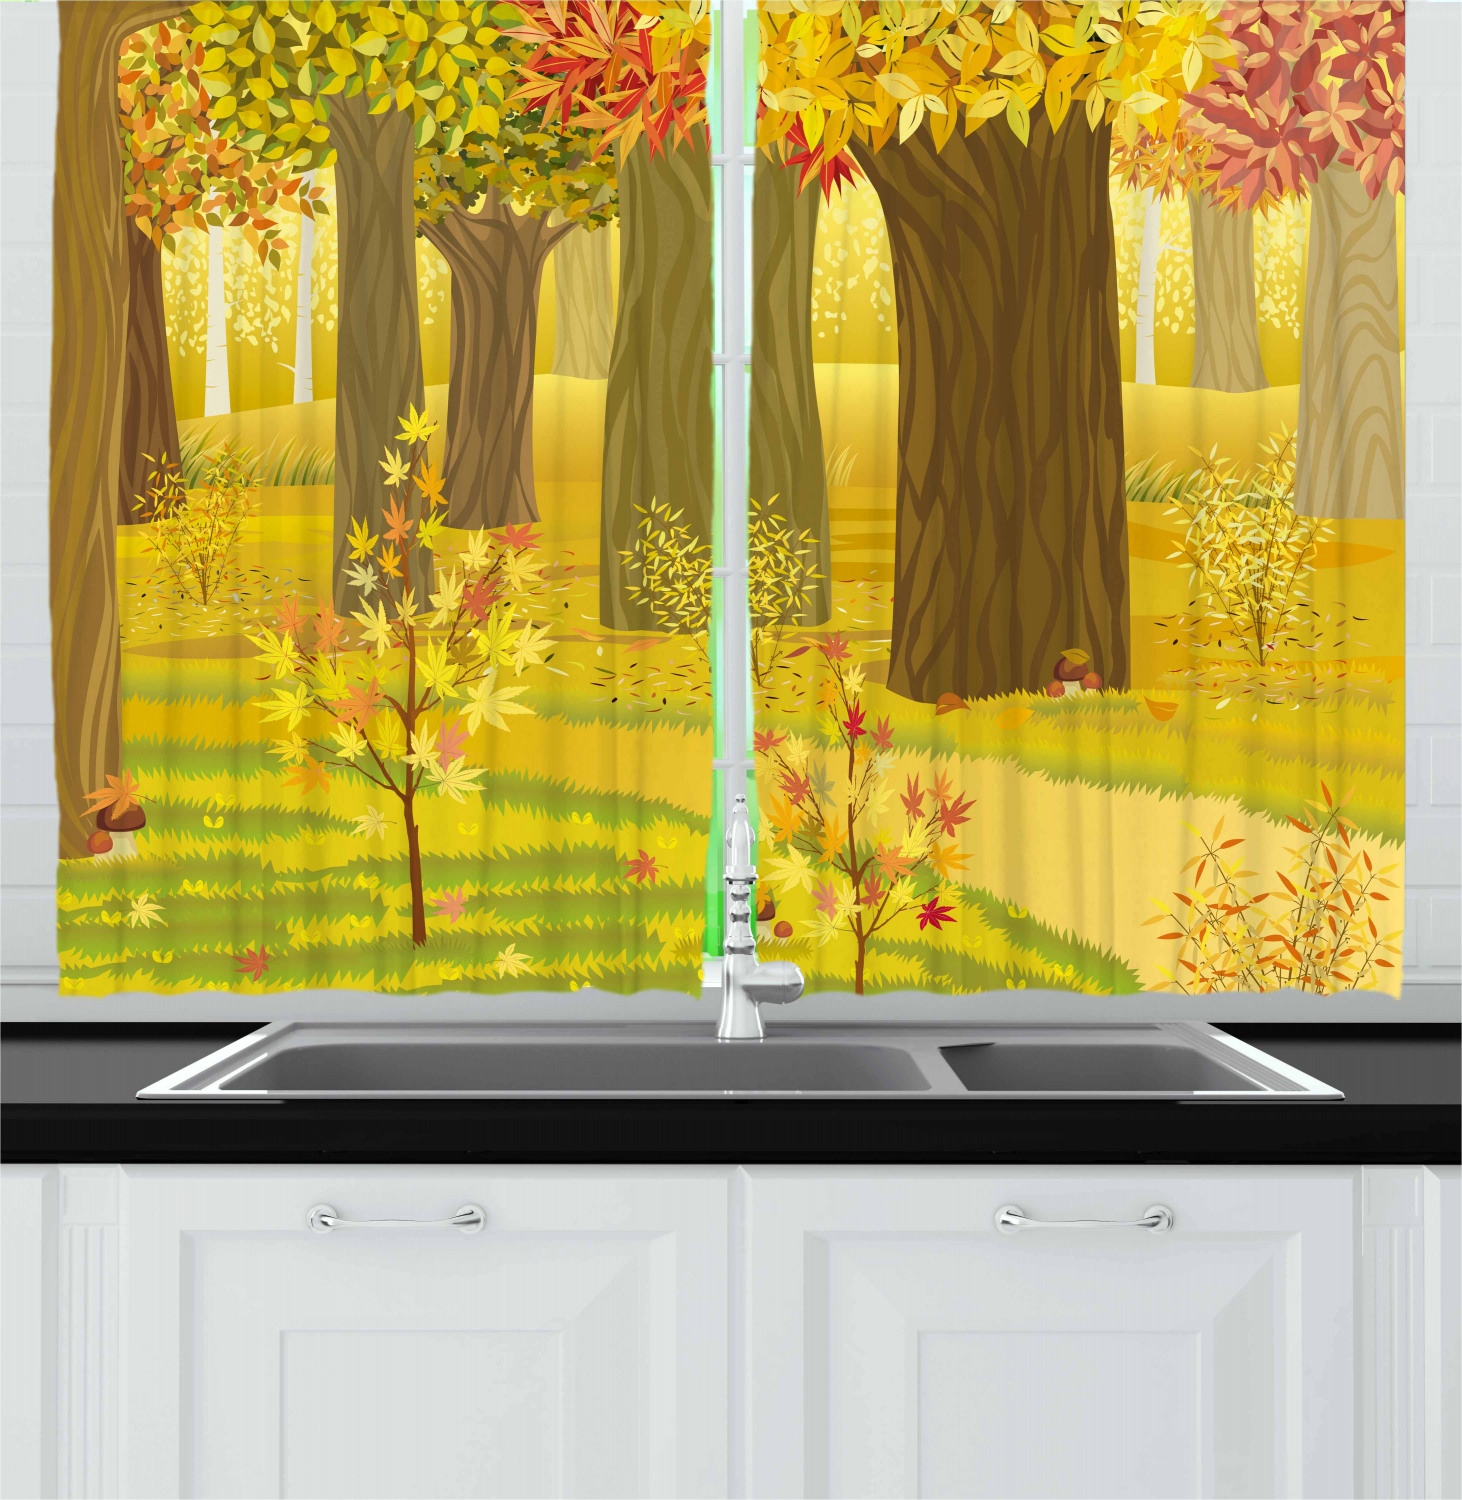 Fall Curtains 2 Panels Set Dreamy Fantasy Enchanted Forest Illustration Deciduous Trees Bushes In The Countryside Window Drapes For Living Room Bedroom 55w X 39l Inches Multicolor By Ambesonne Walmart Com